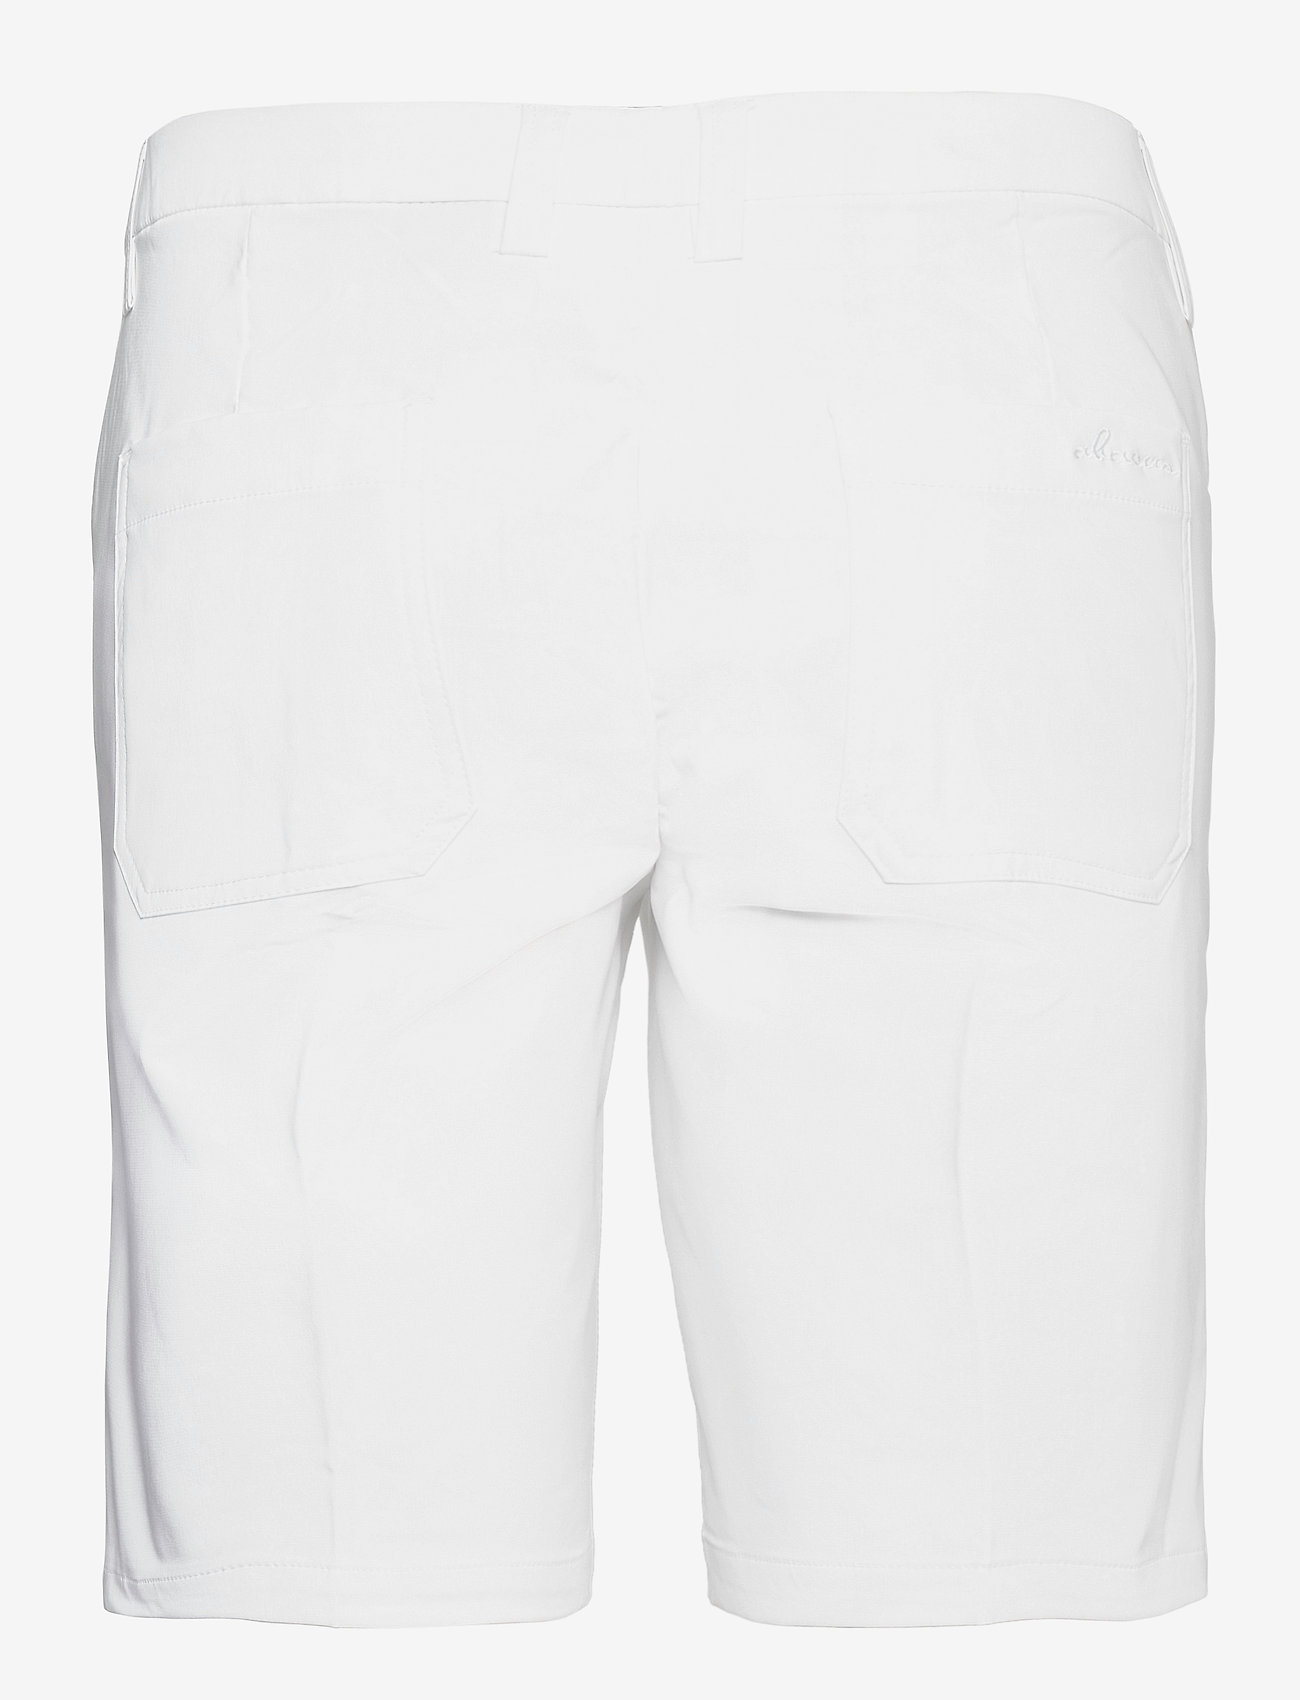 Abacus - Lds Cleek stretch shorts 46cm - golfshorts - white - 1